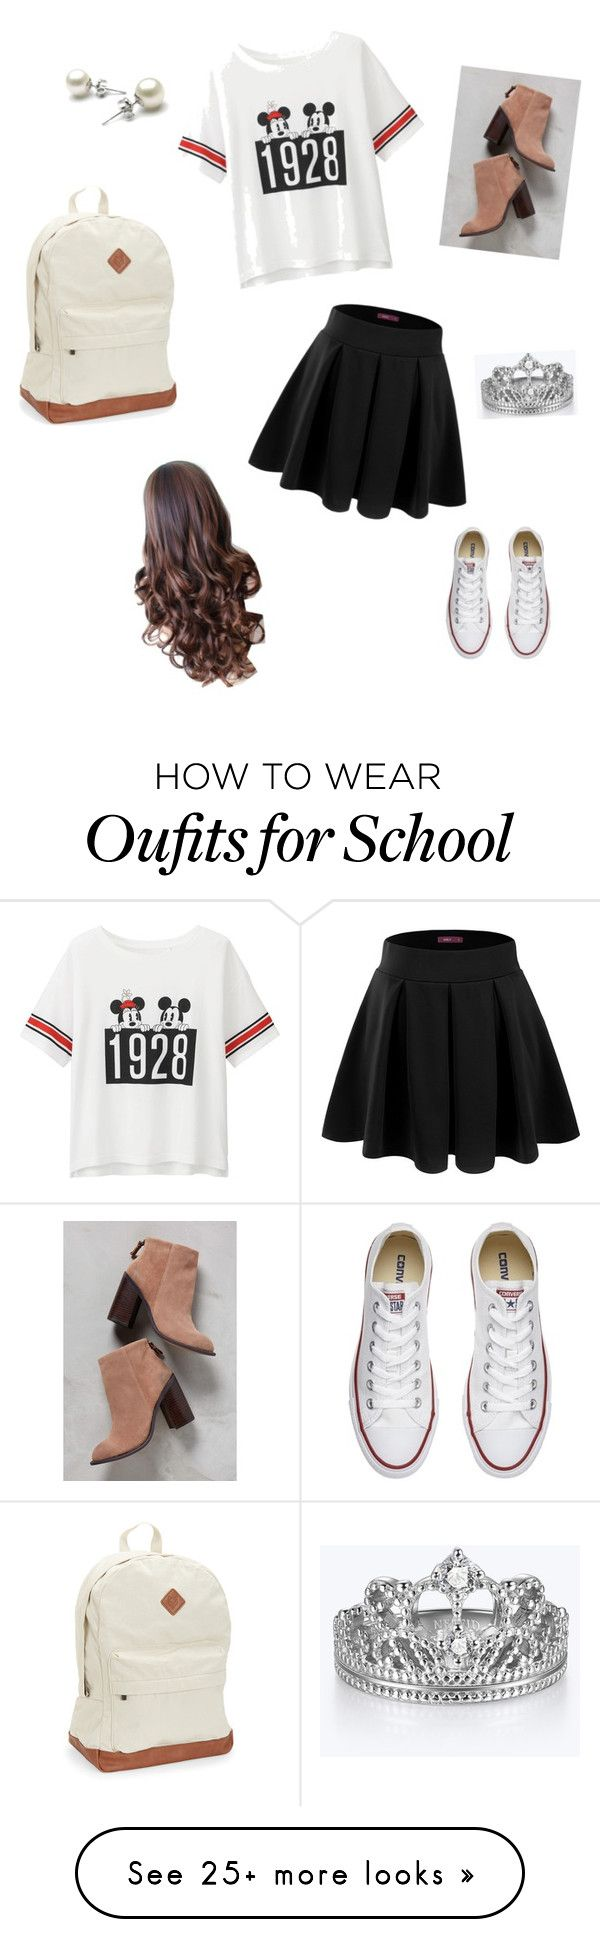 """Nice but Comfy for school"" by thesandlott on Polyvore featuring Uniqlo, Doublju, Kelsi Dagger Brooklyn, Aéropostale and Converse"